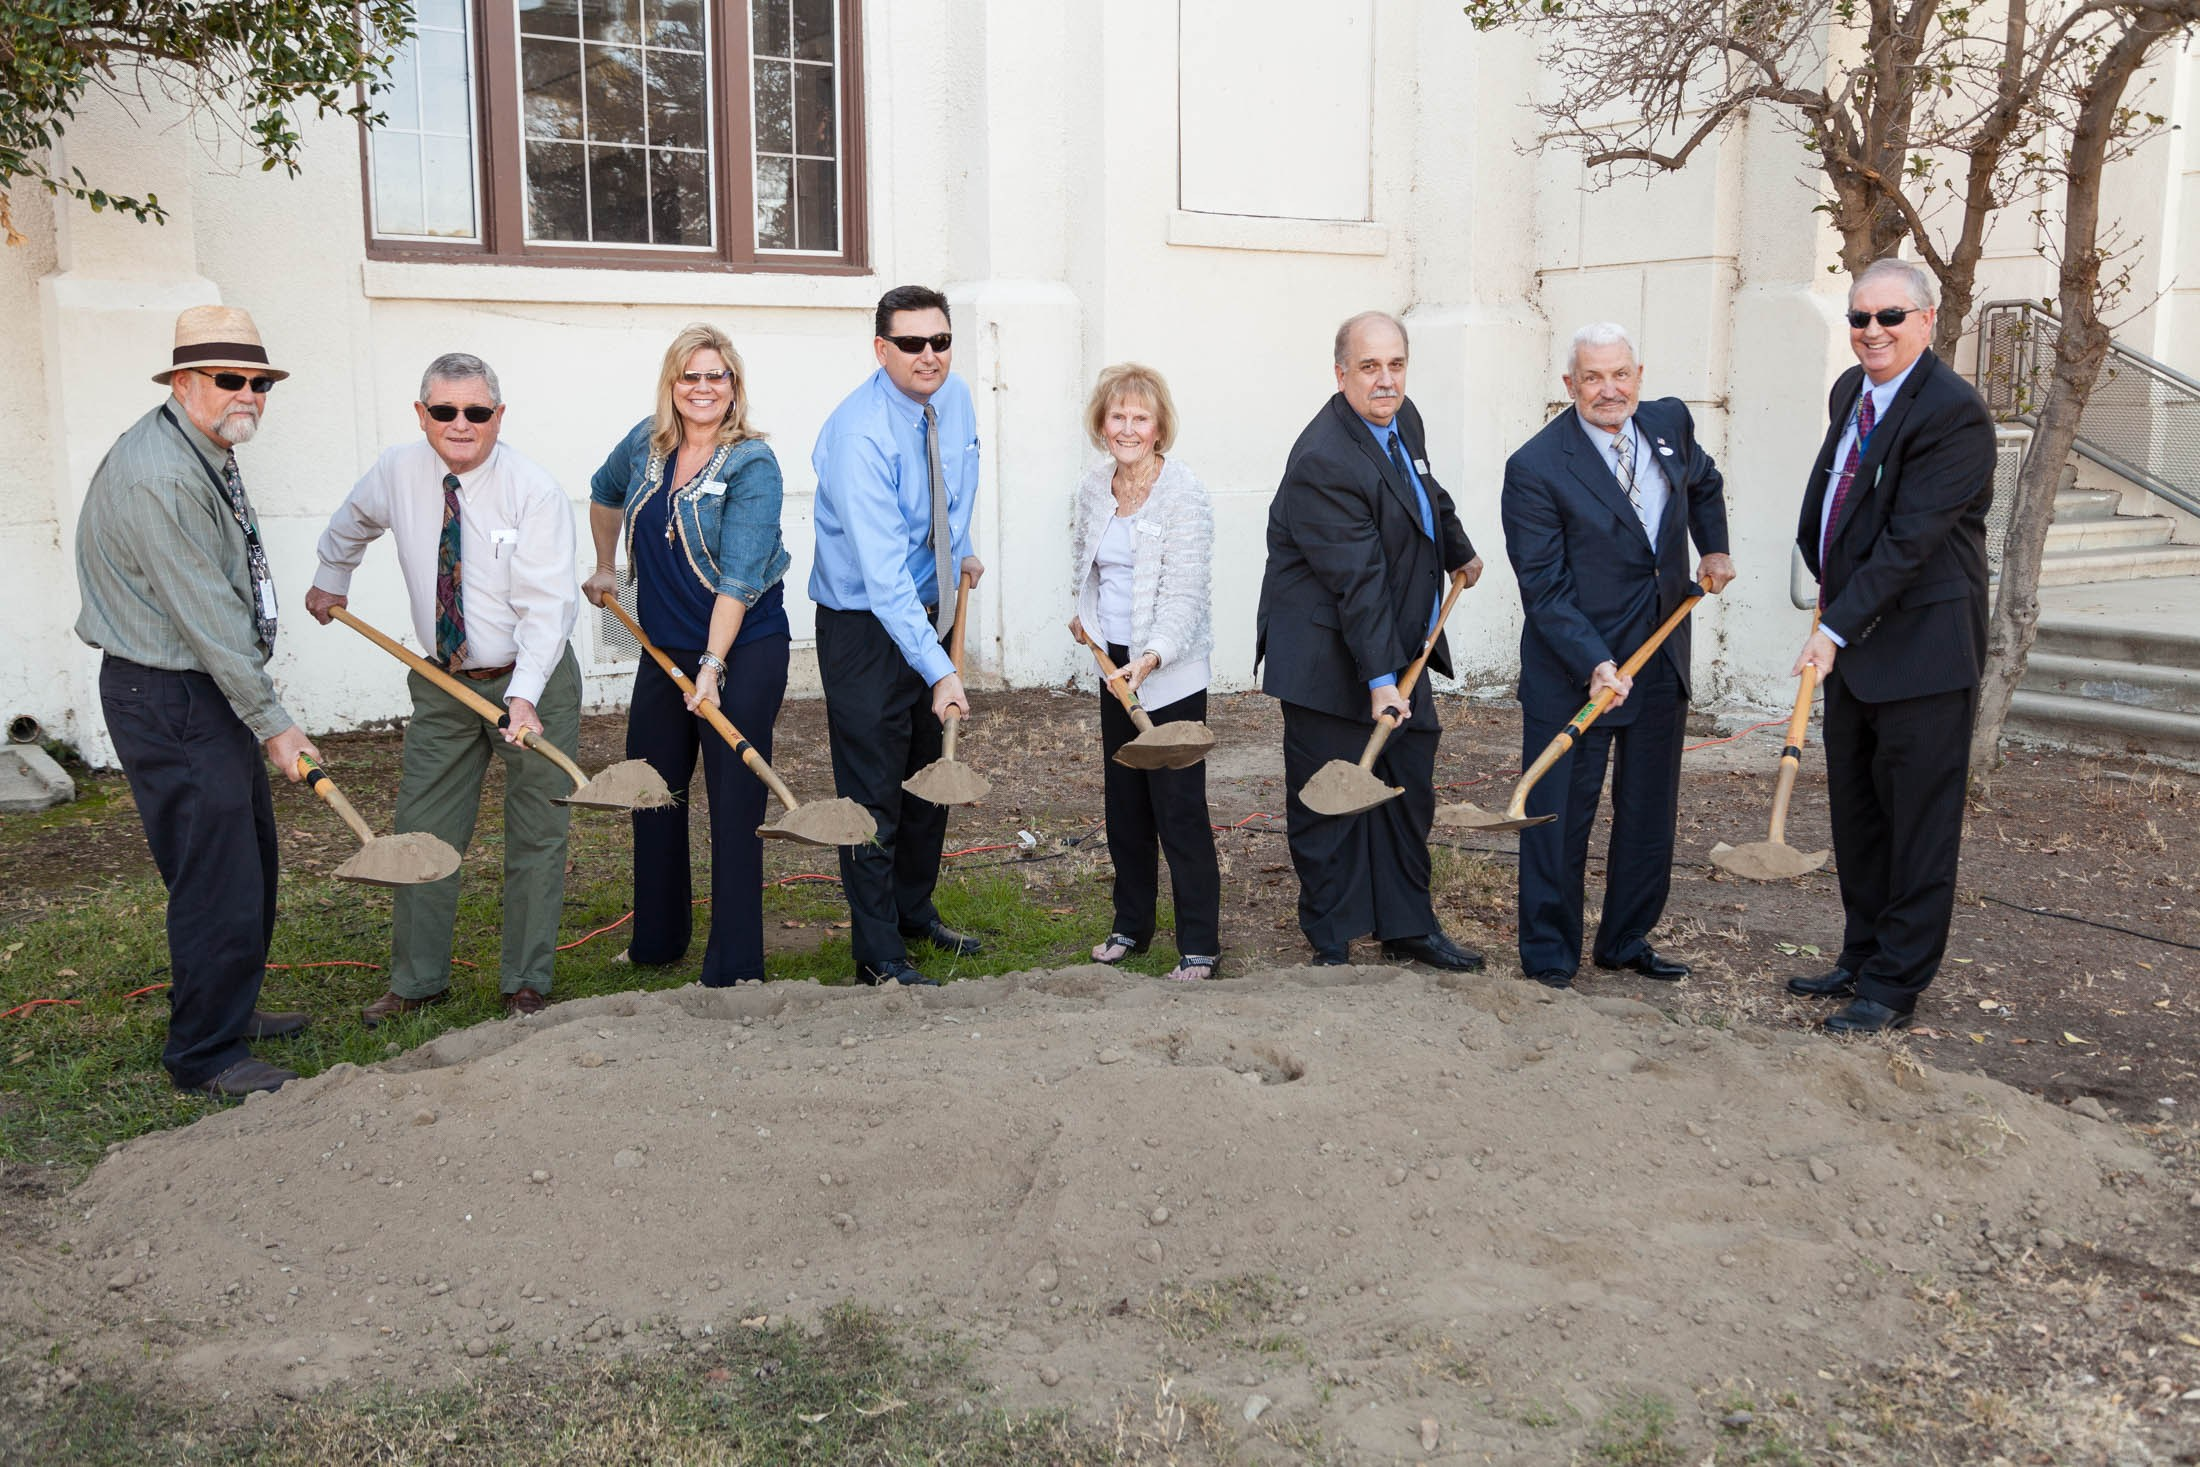 Hemet Elementary Groundbreaking Ceremony